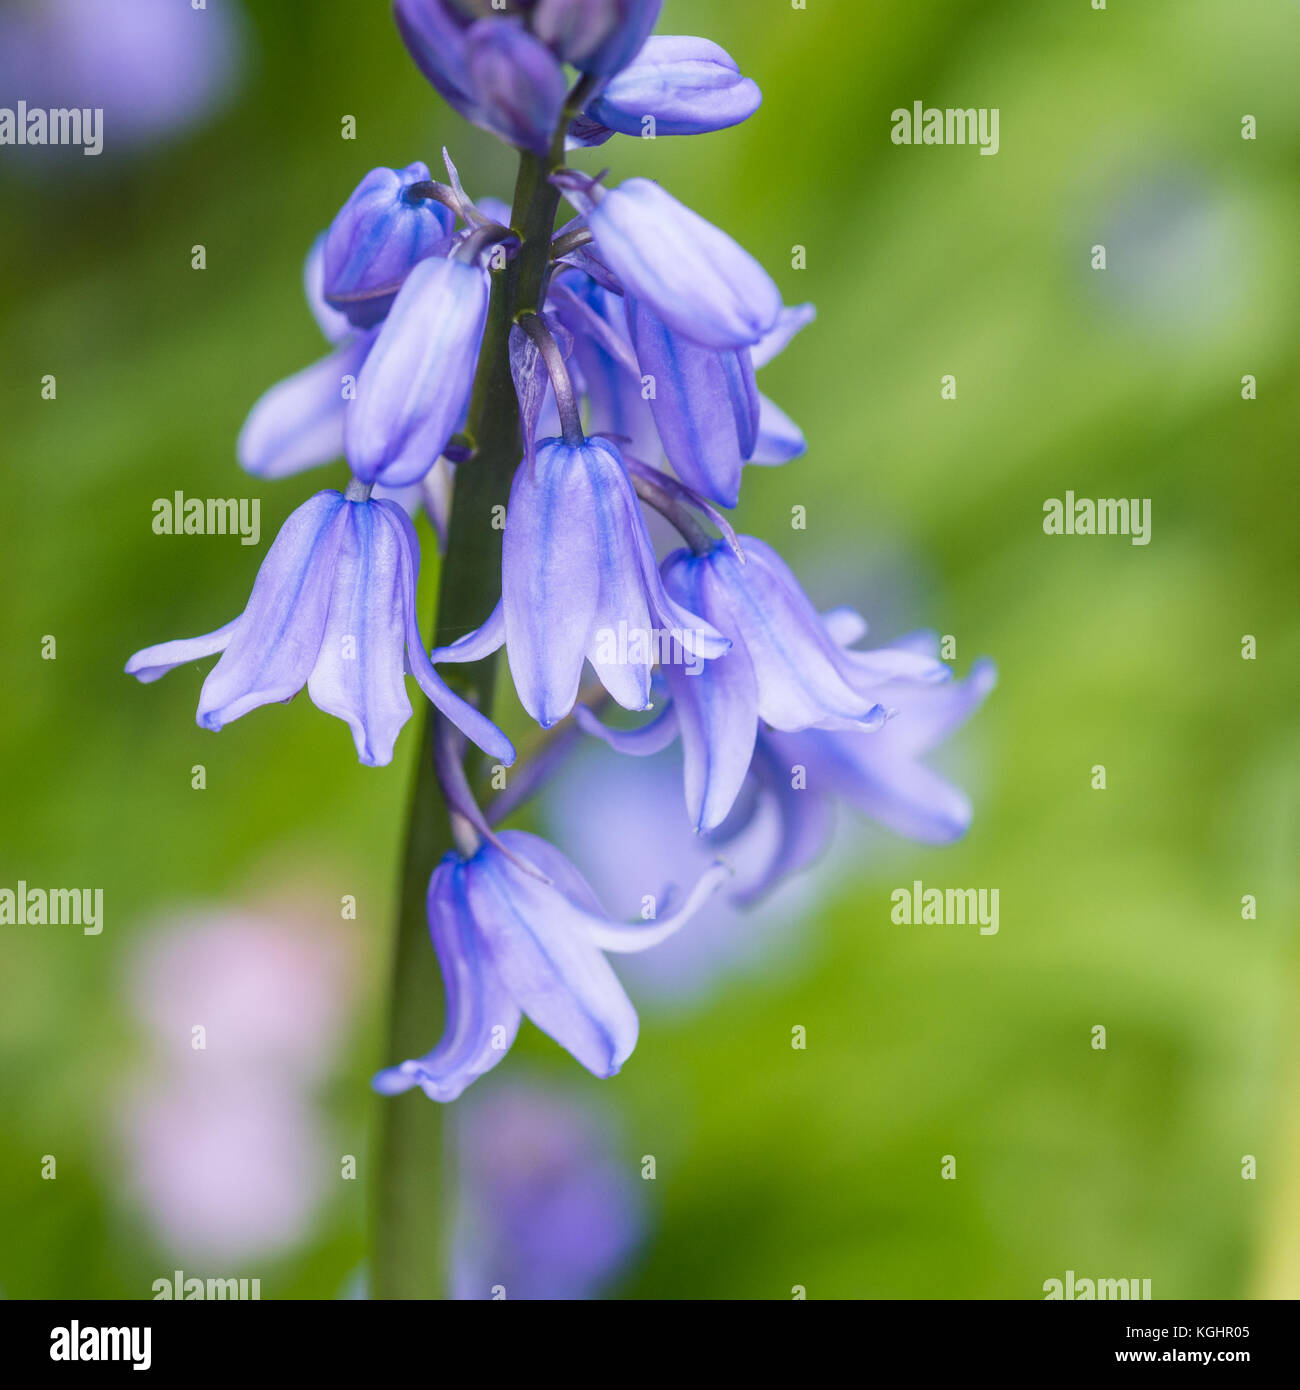 A shot of some spanish bluebell blooms. - Stock Image